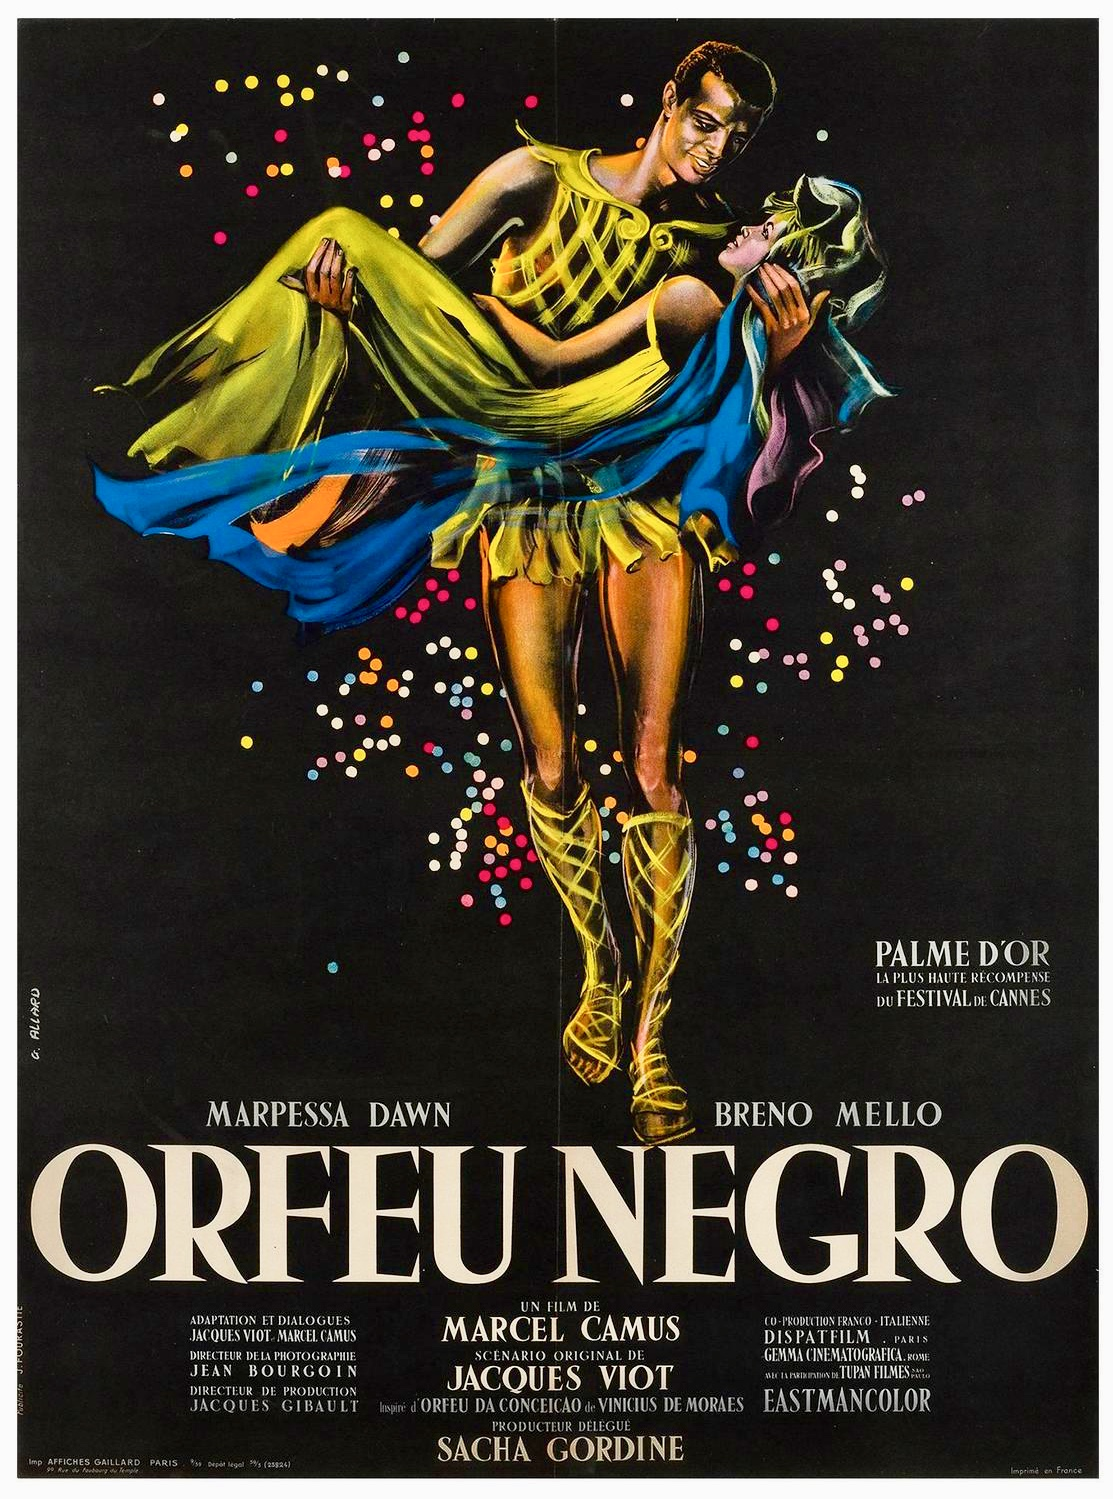 60 th Anniversary screening of Black Orpheus